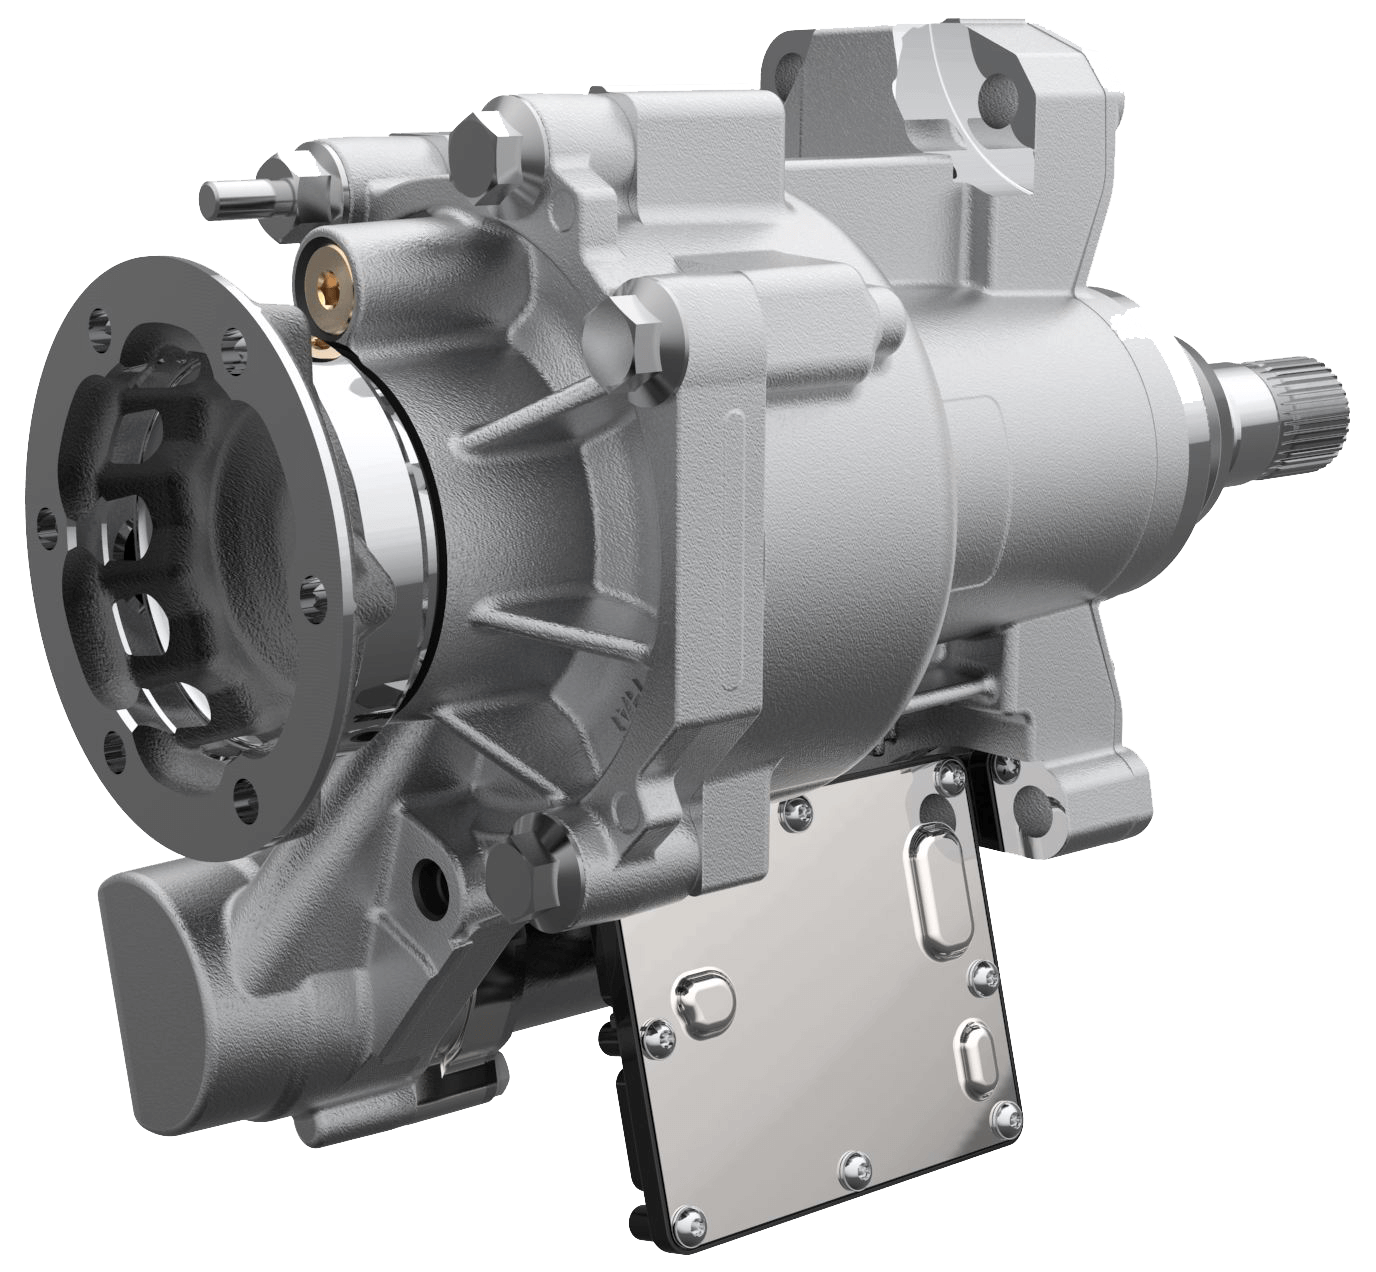 Generation 5 Cross Axle System FXD